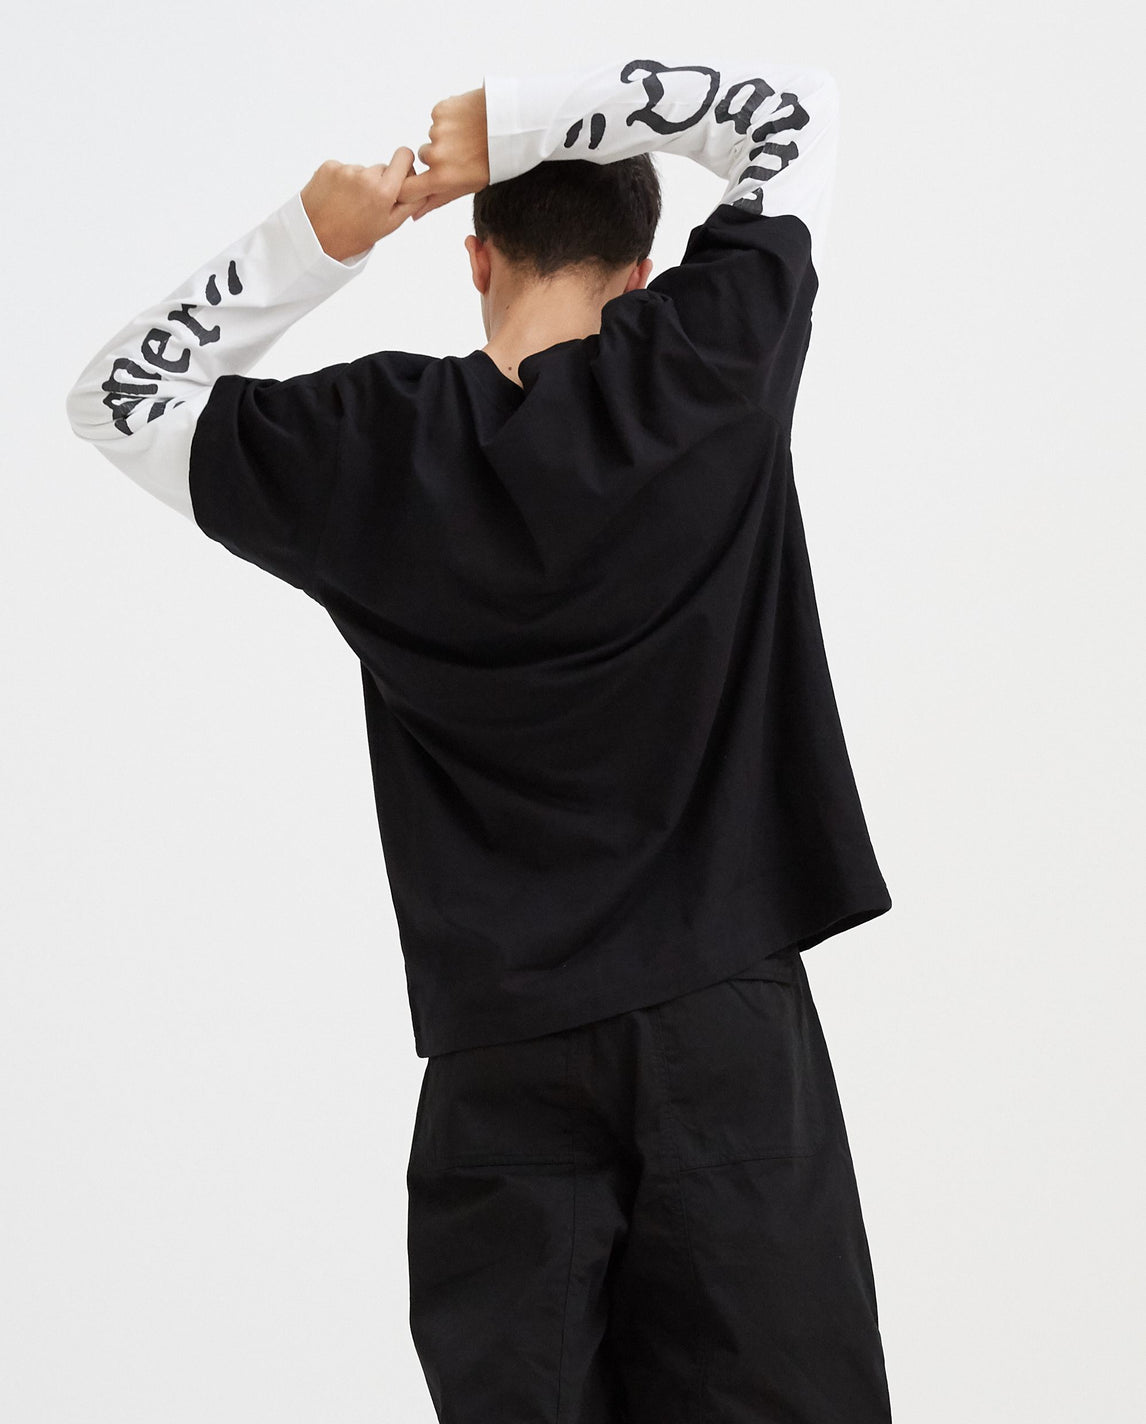 Skater Shirt with Print - Black MENS VYNER ARTICLES